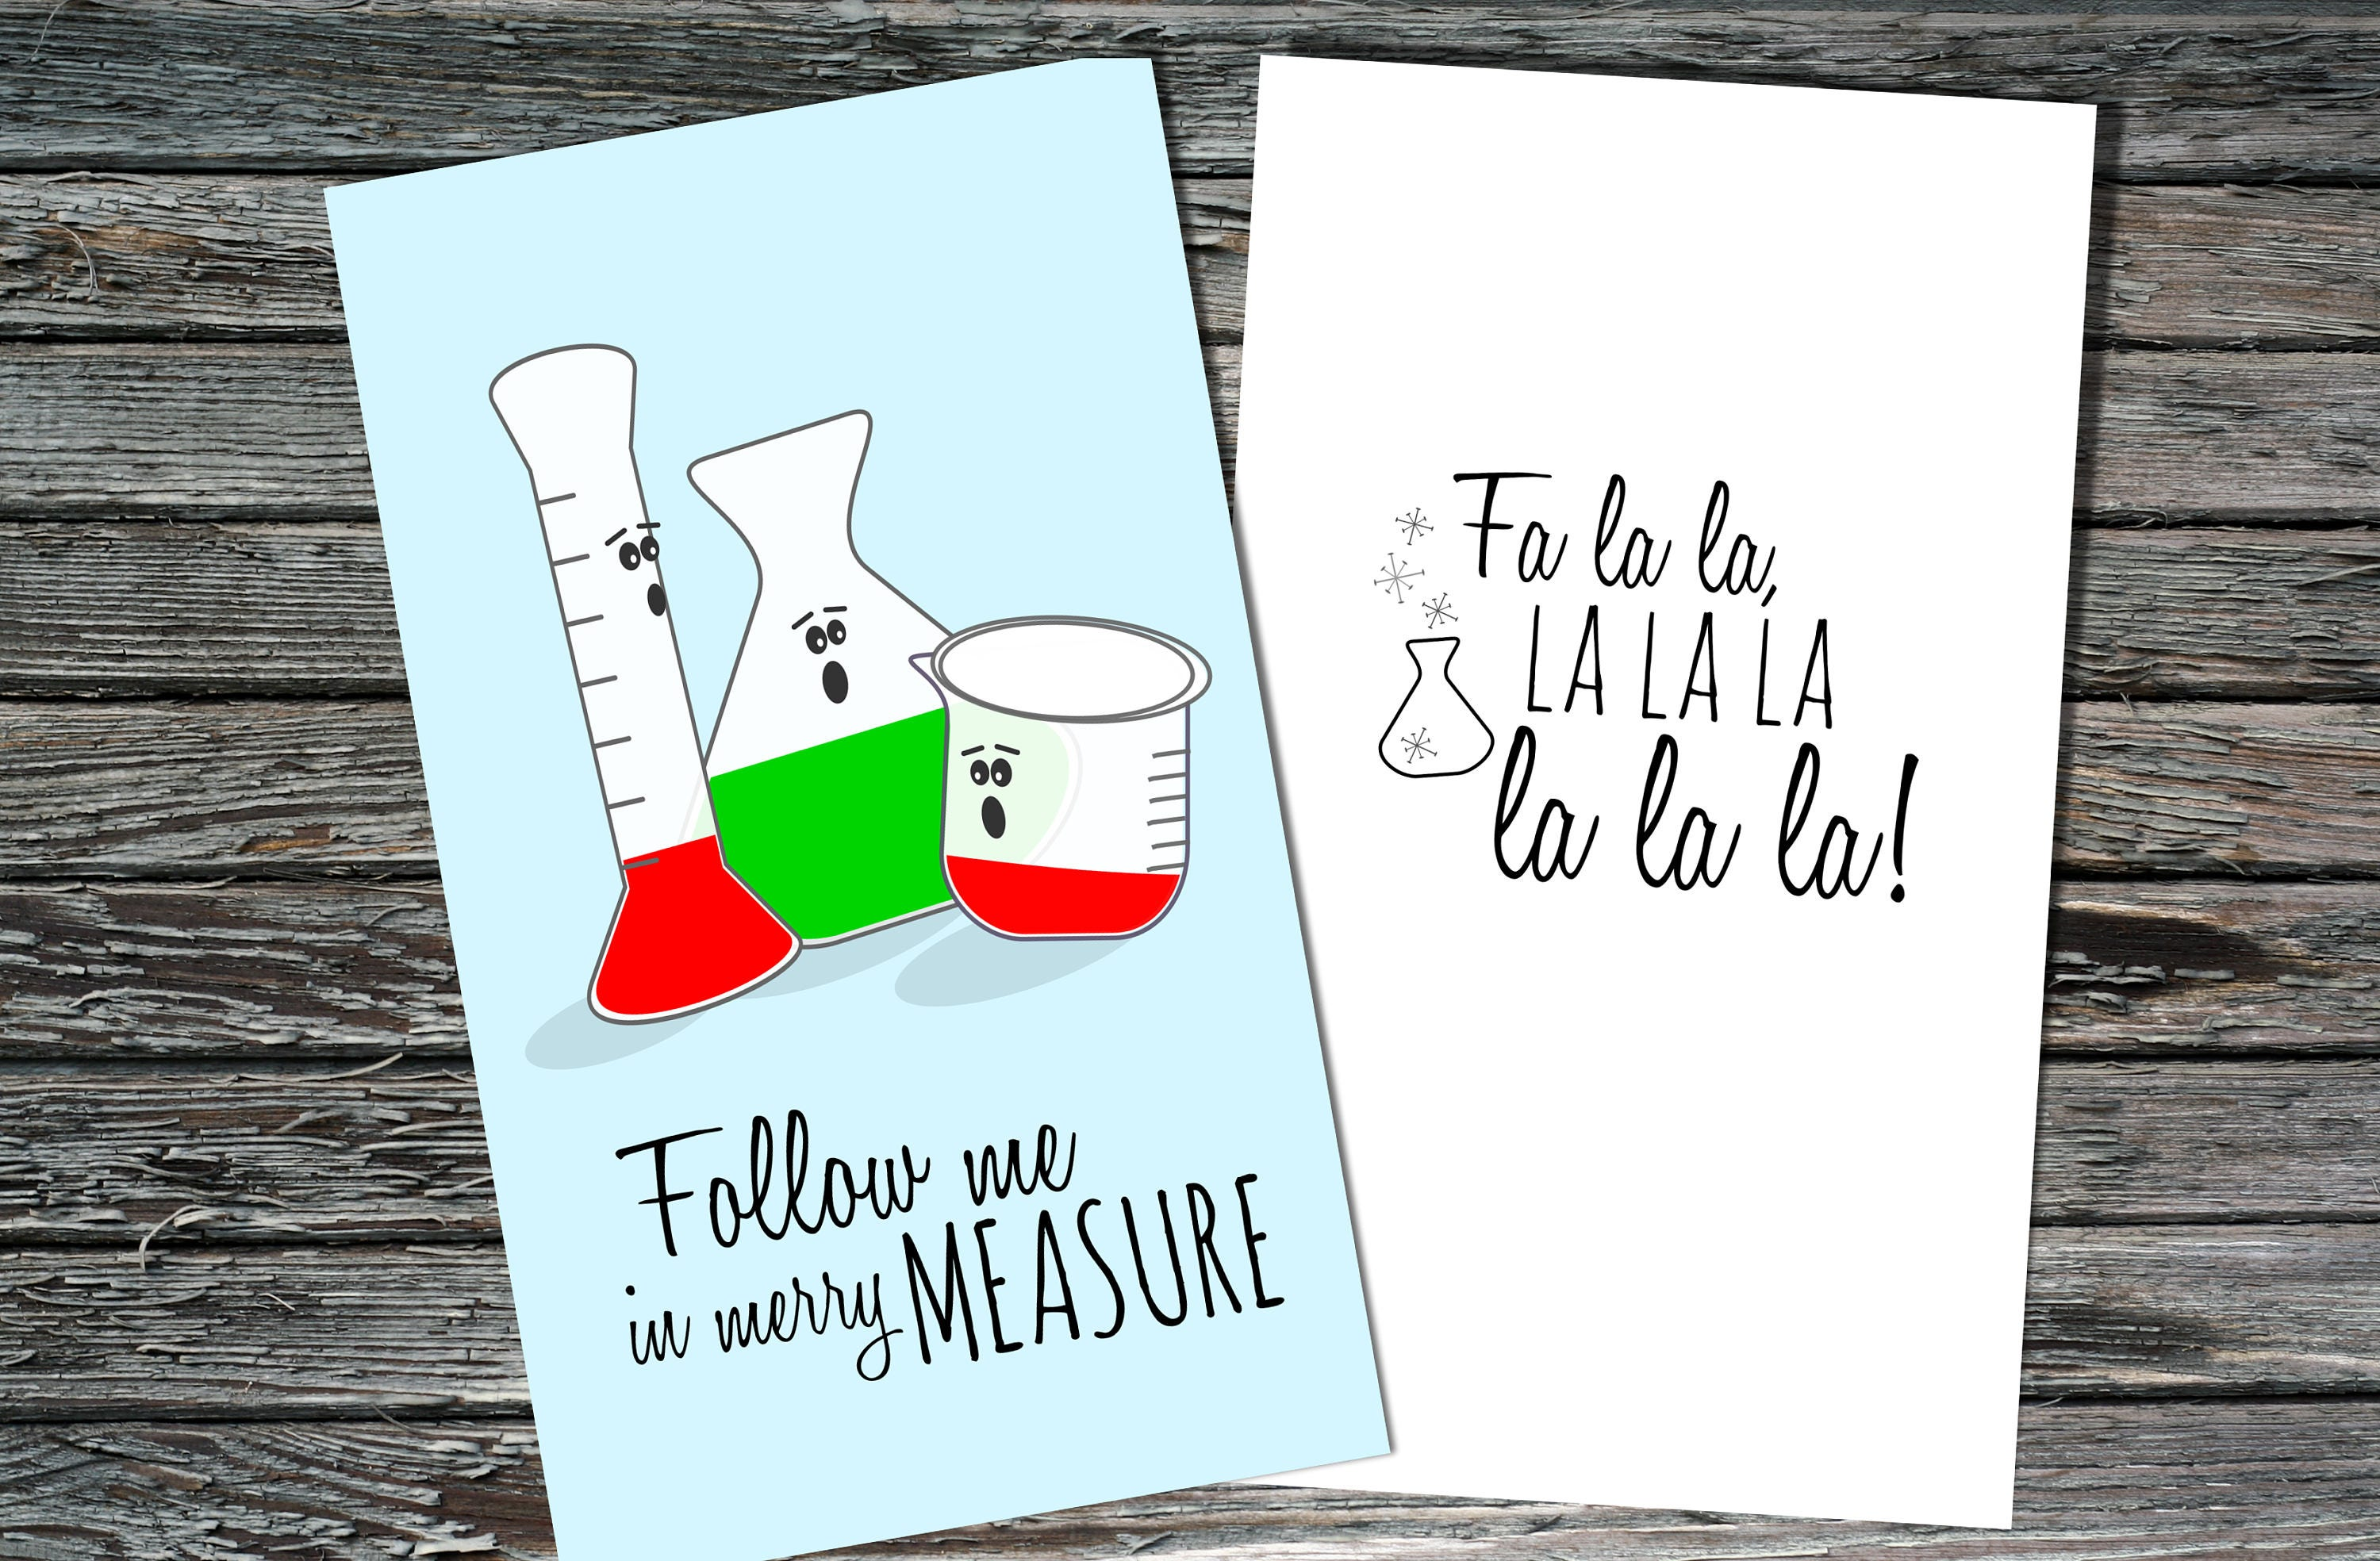 Mini science holiday christmas cards set of 12 merry description little science themed holiday christmas cards kristyandbryce Image collections